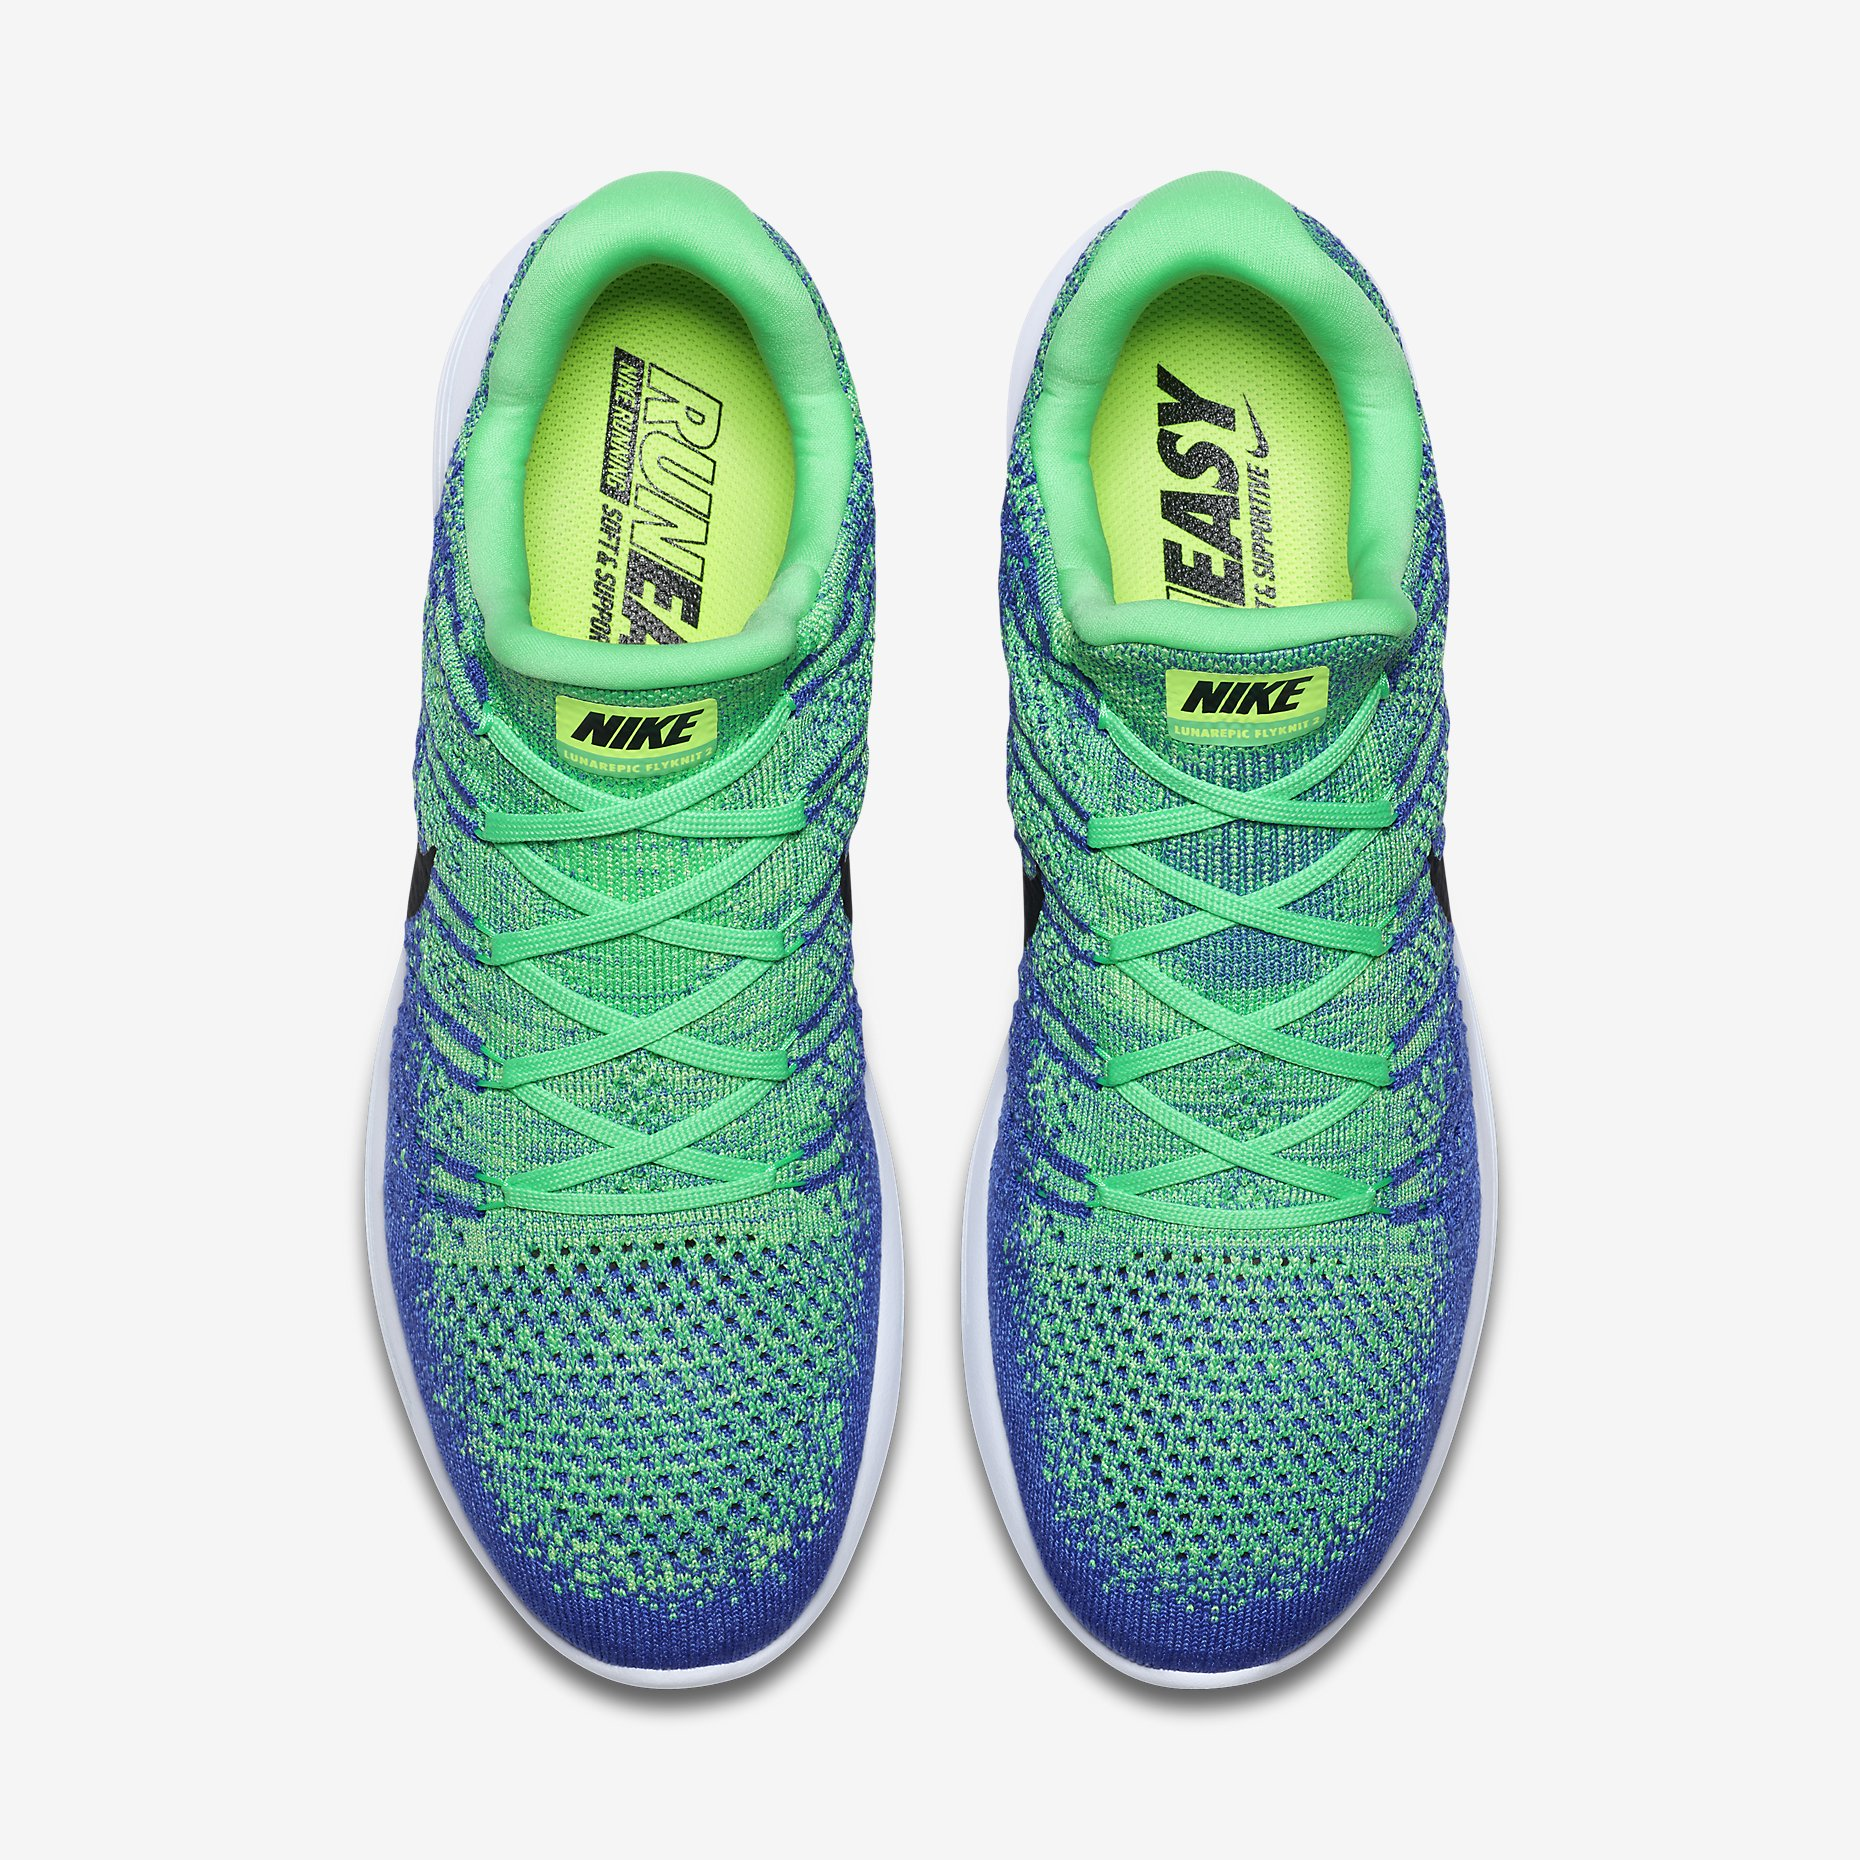 Nike LunarEpic Low FlyKnit 2 Mens Running Shoes